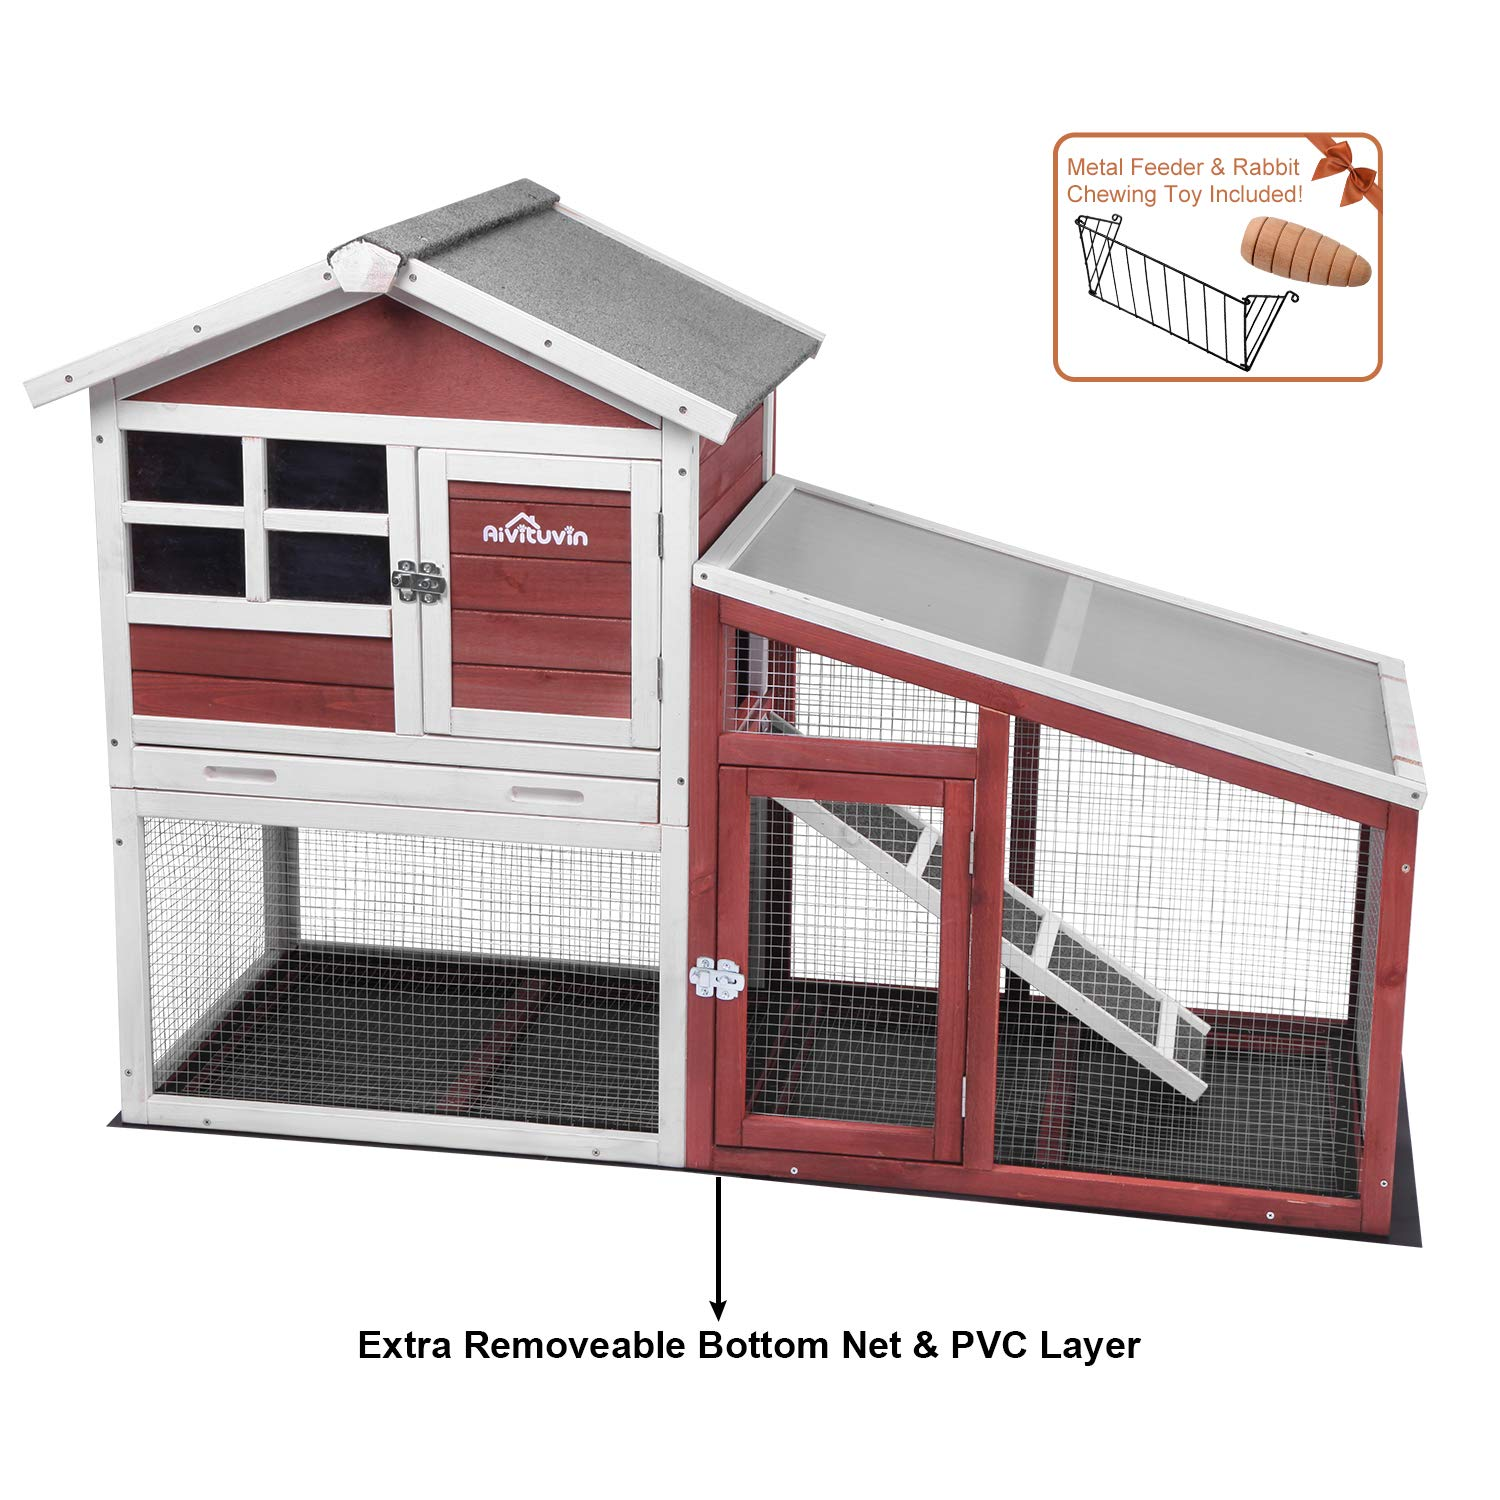 Aivituvin Chicken Coop Indoor and Outdoor Wooden Hen House with Removable Bottom Wire Mesh & PVC Layer,Rabbit Hutch with Deeper No LeakageTray,UV Panel ¡­